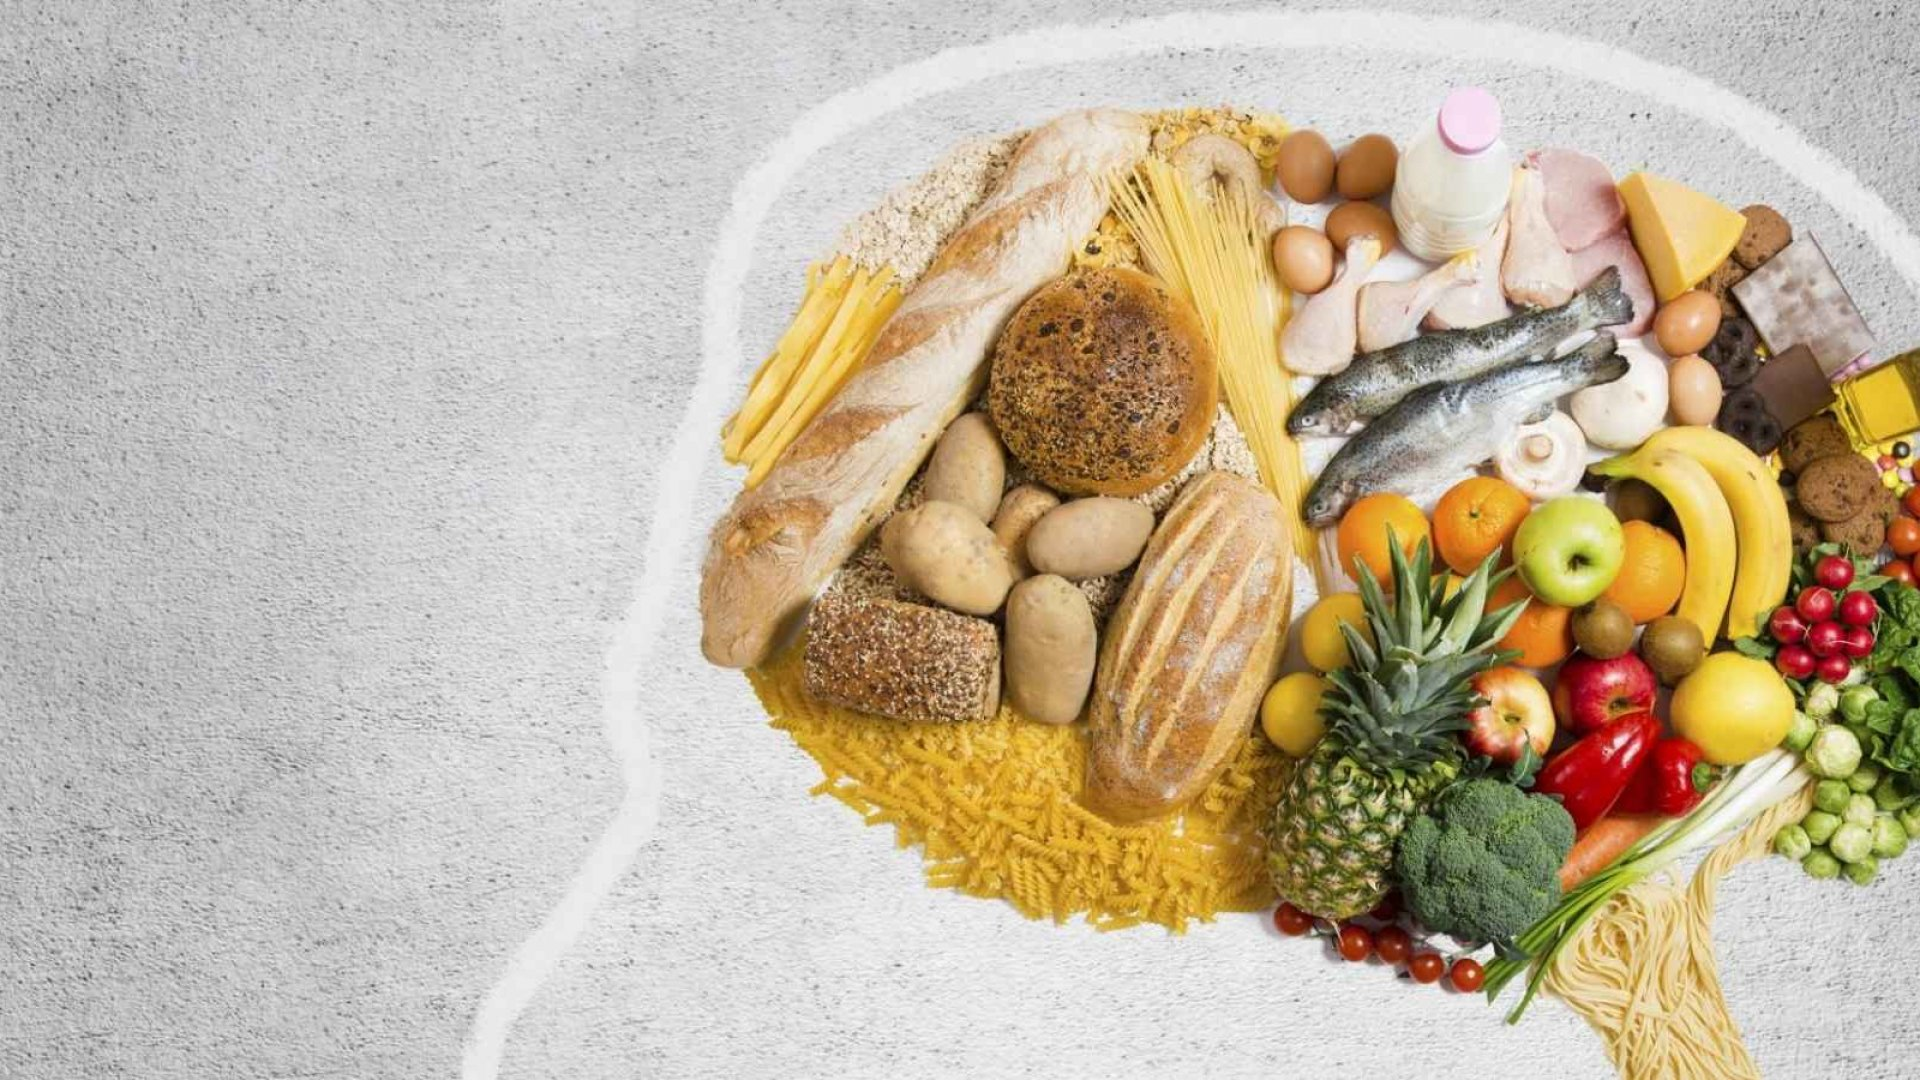 What to Eat to Keep Your Mind Sharp